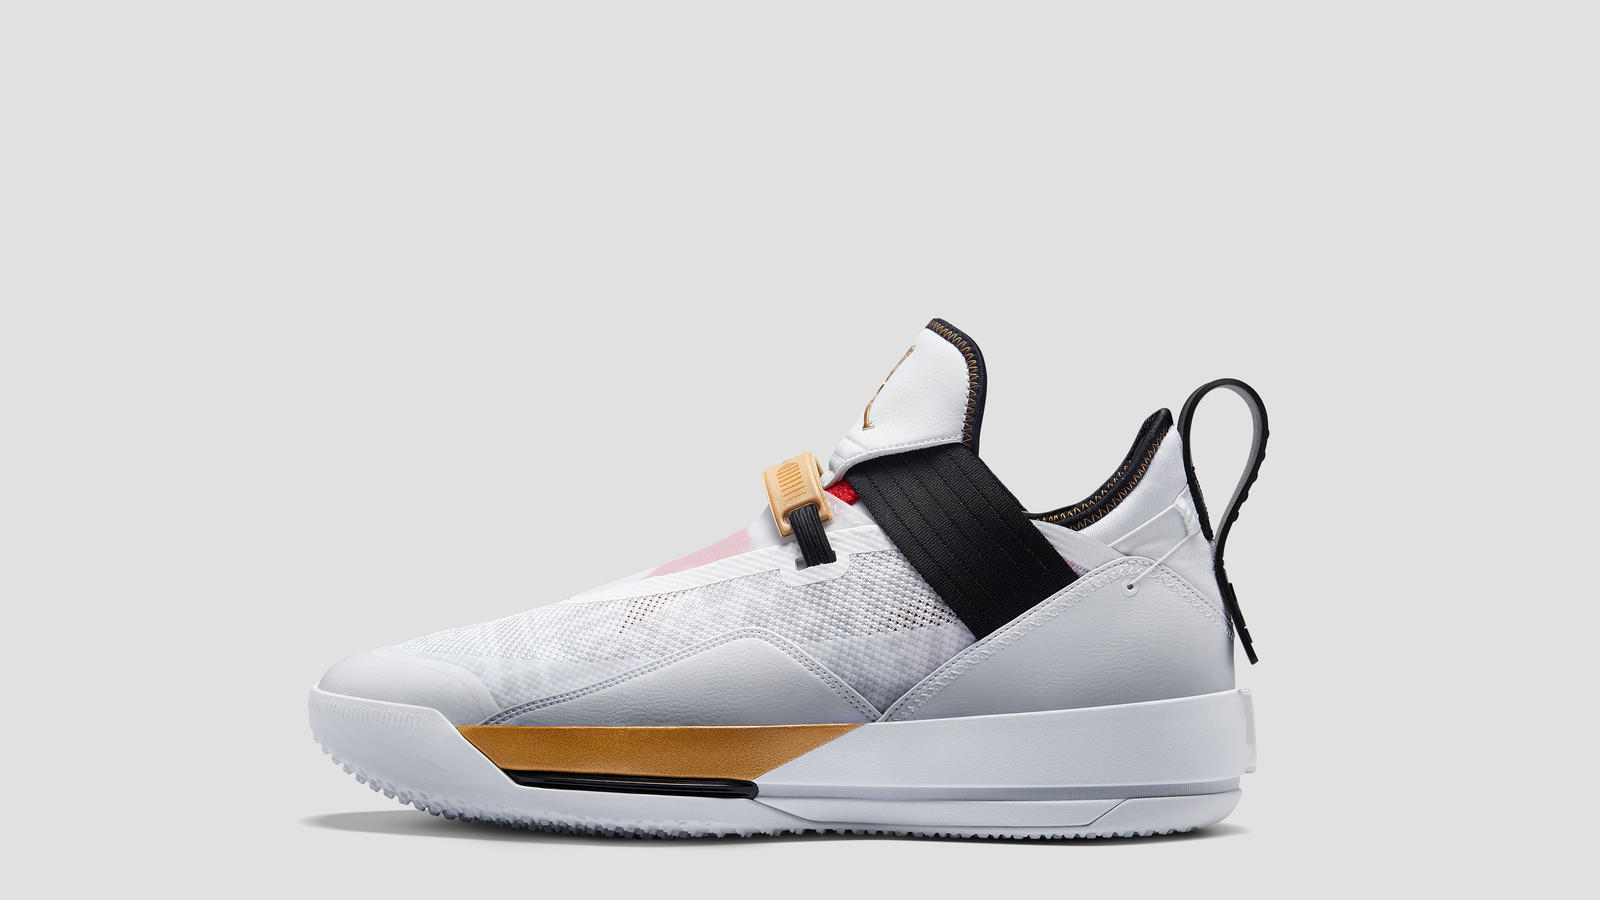 Jordan Brand International Basketball Fall 2019 Footwear